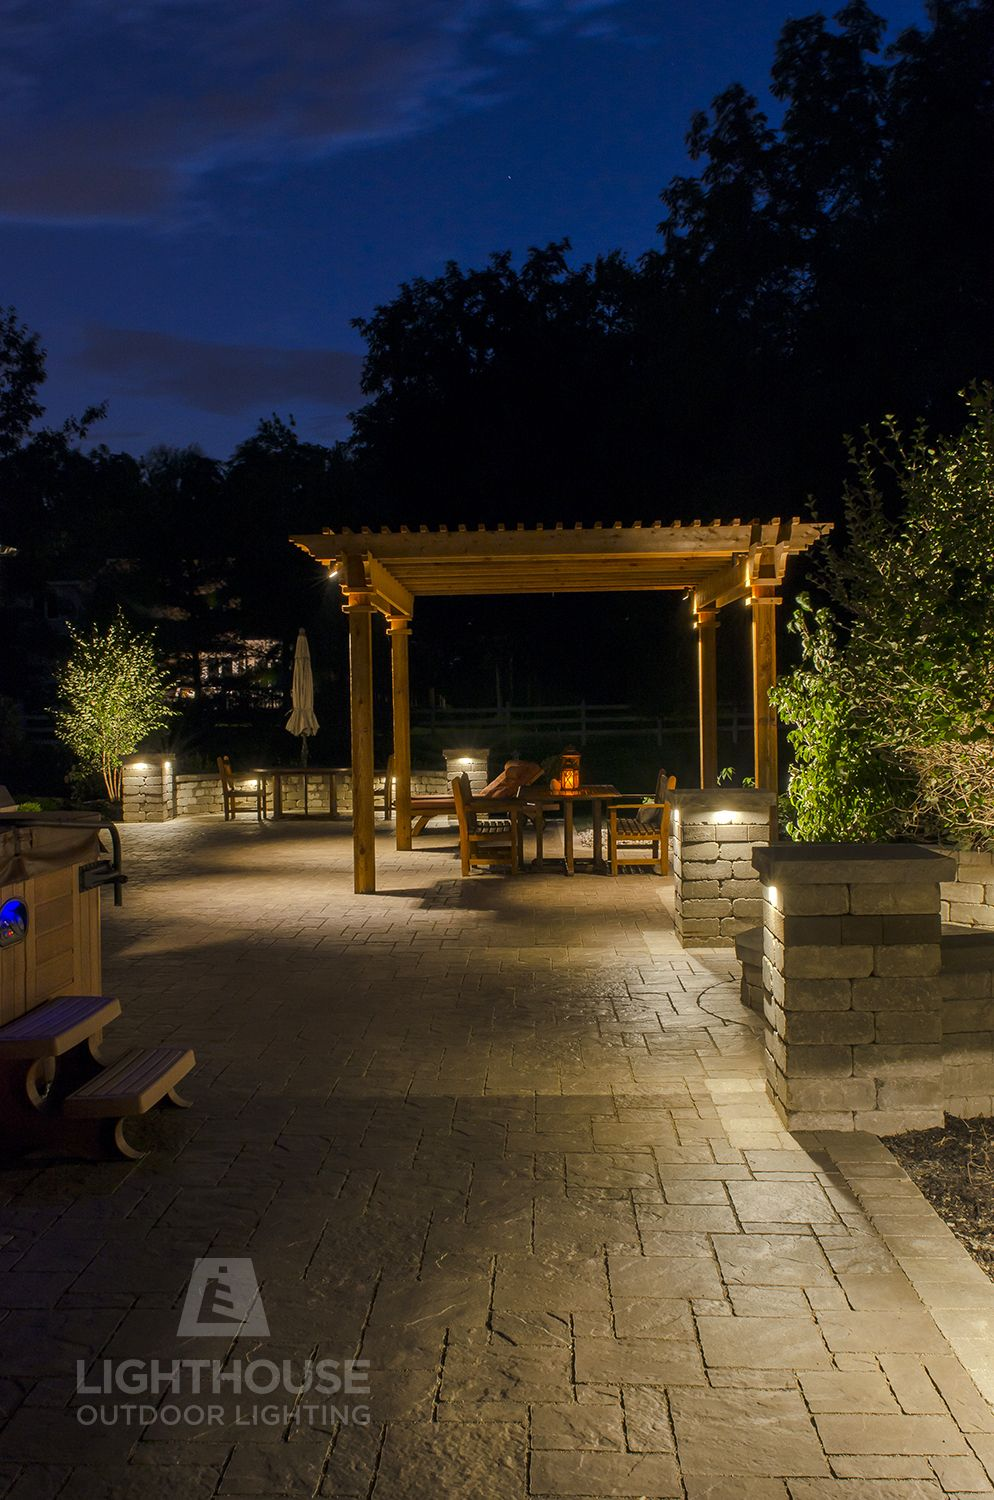 Low Voltage Lighting Set In The Walls And Pergola Of This Backyard Create An Inviting